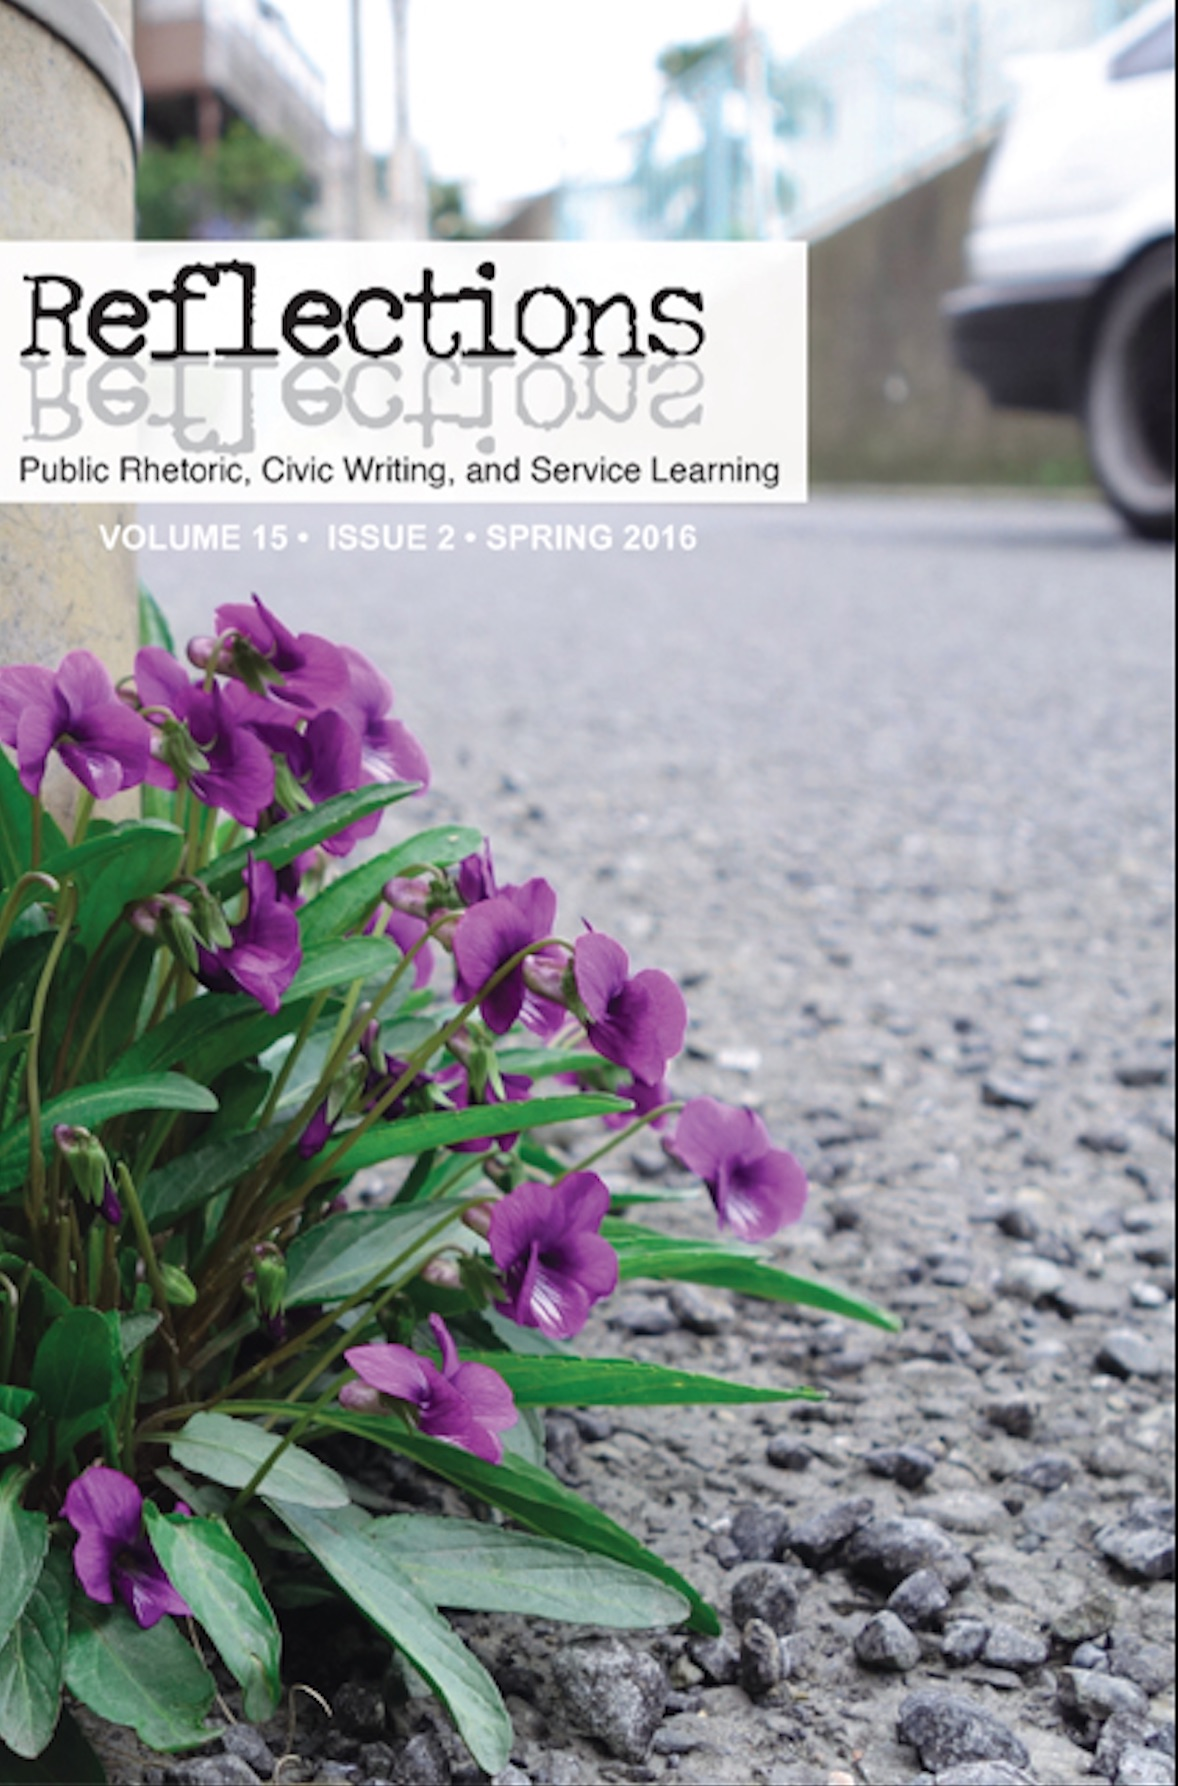 Reflections Volume 15, Issue 2, Spring 2016 - Entire Issue